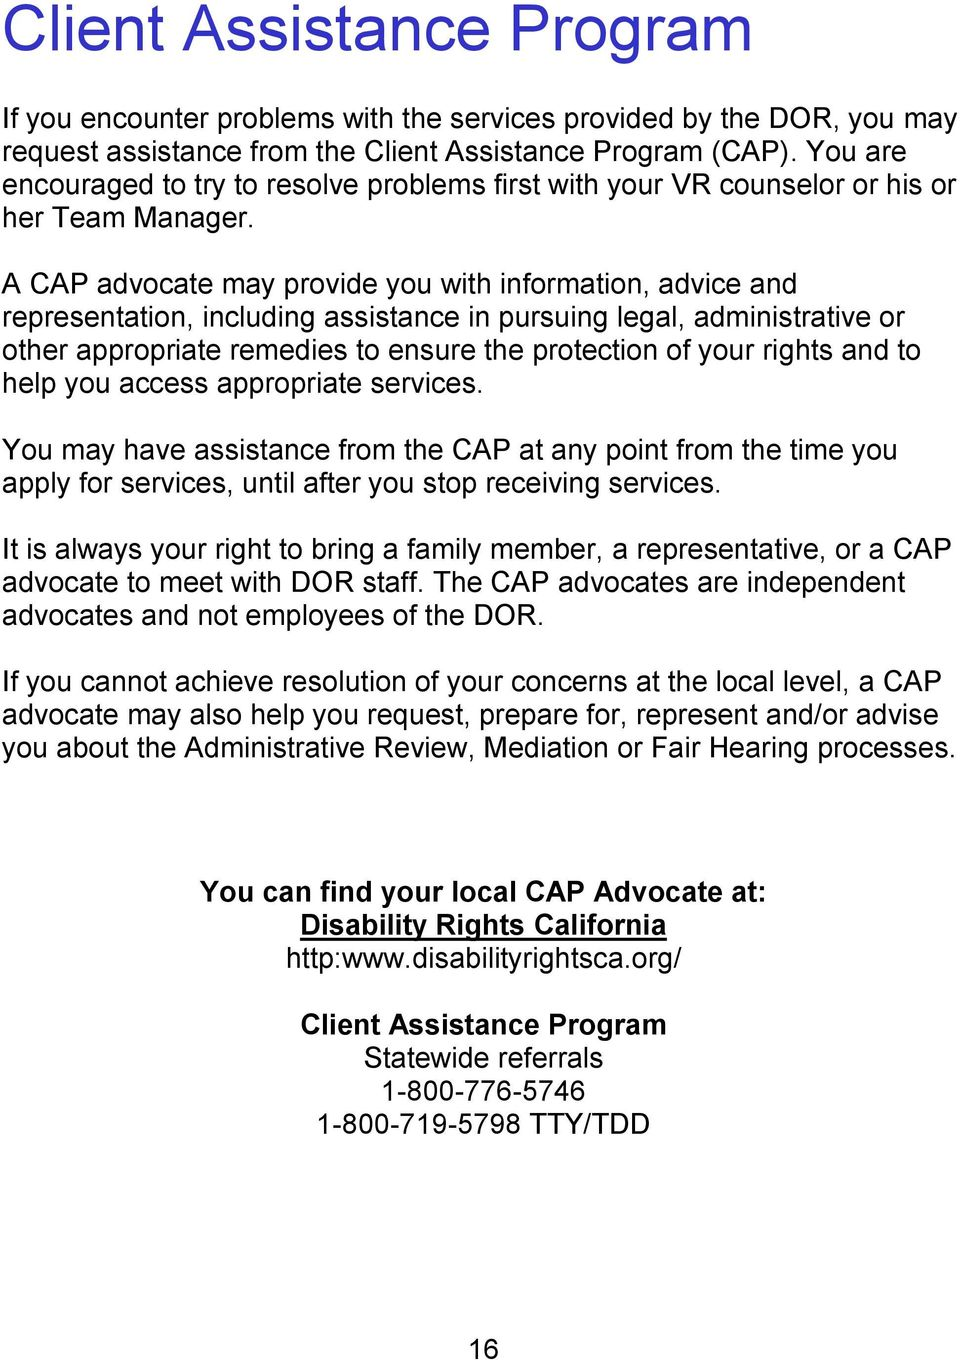 A CAP advocate may provide you with information, advice and representation, including assistance in pursuing legal, administrative or other appropriate remedies to ensure the protection of your